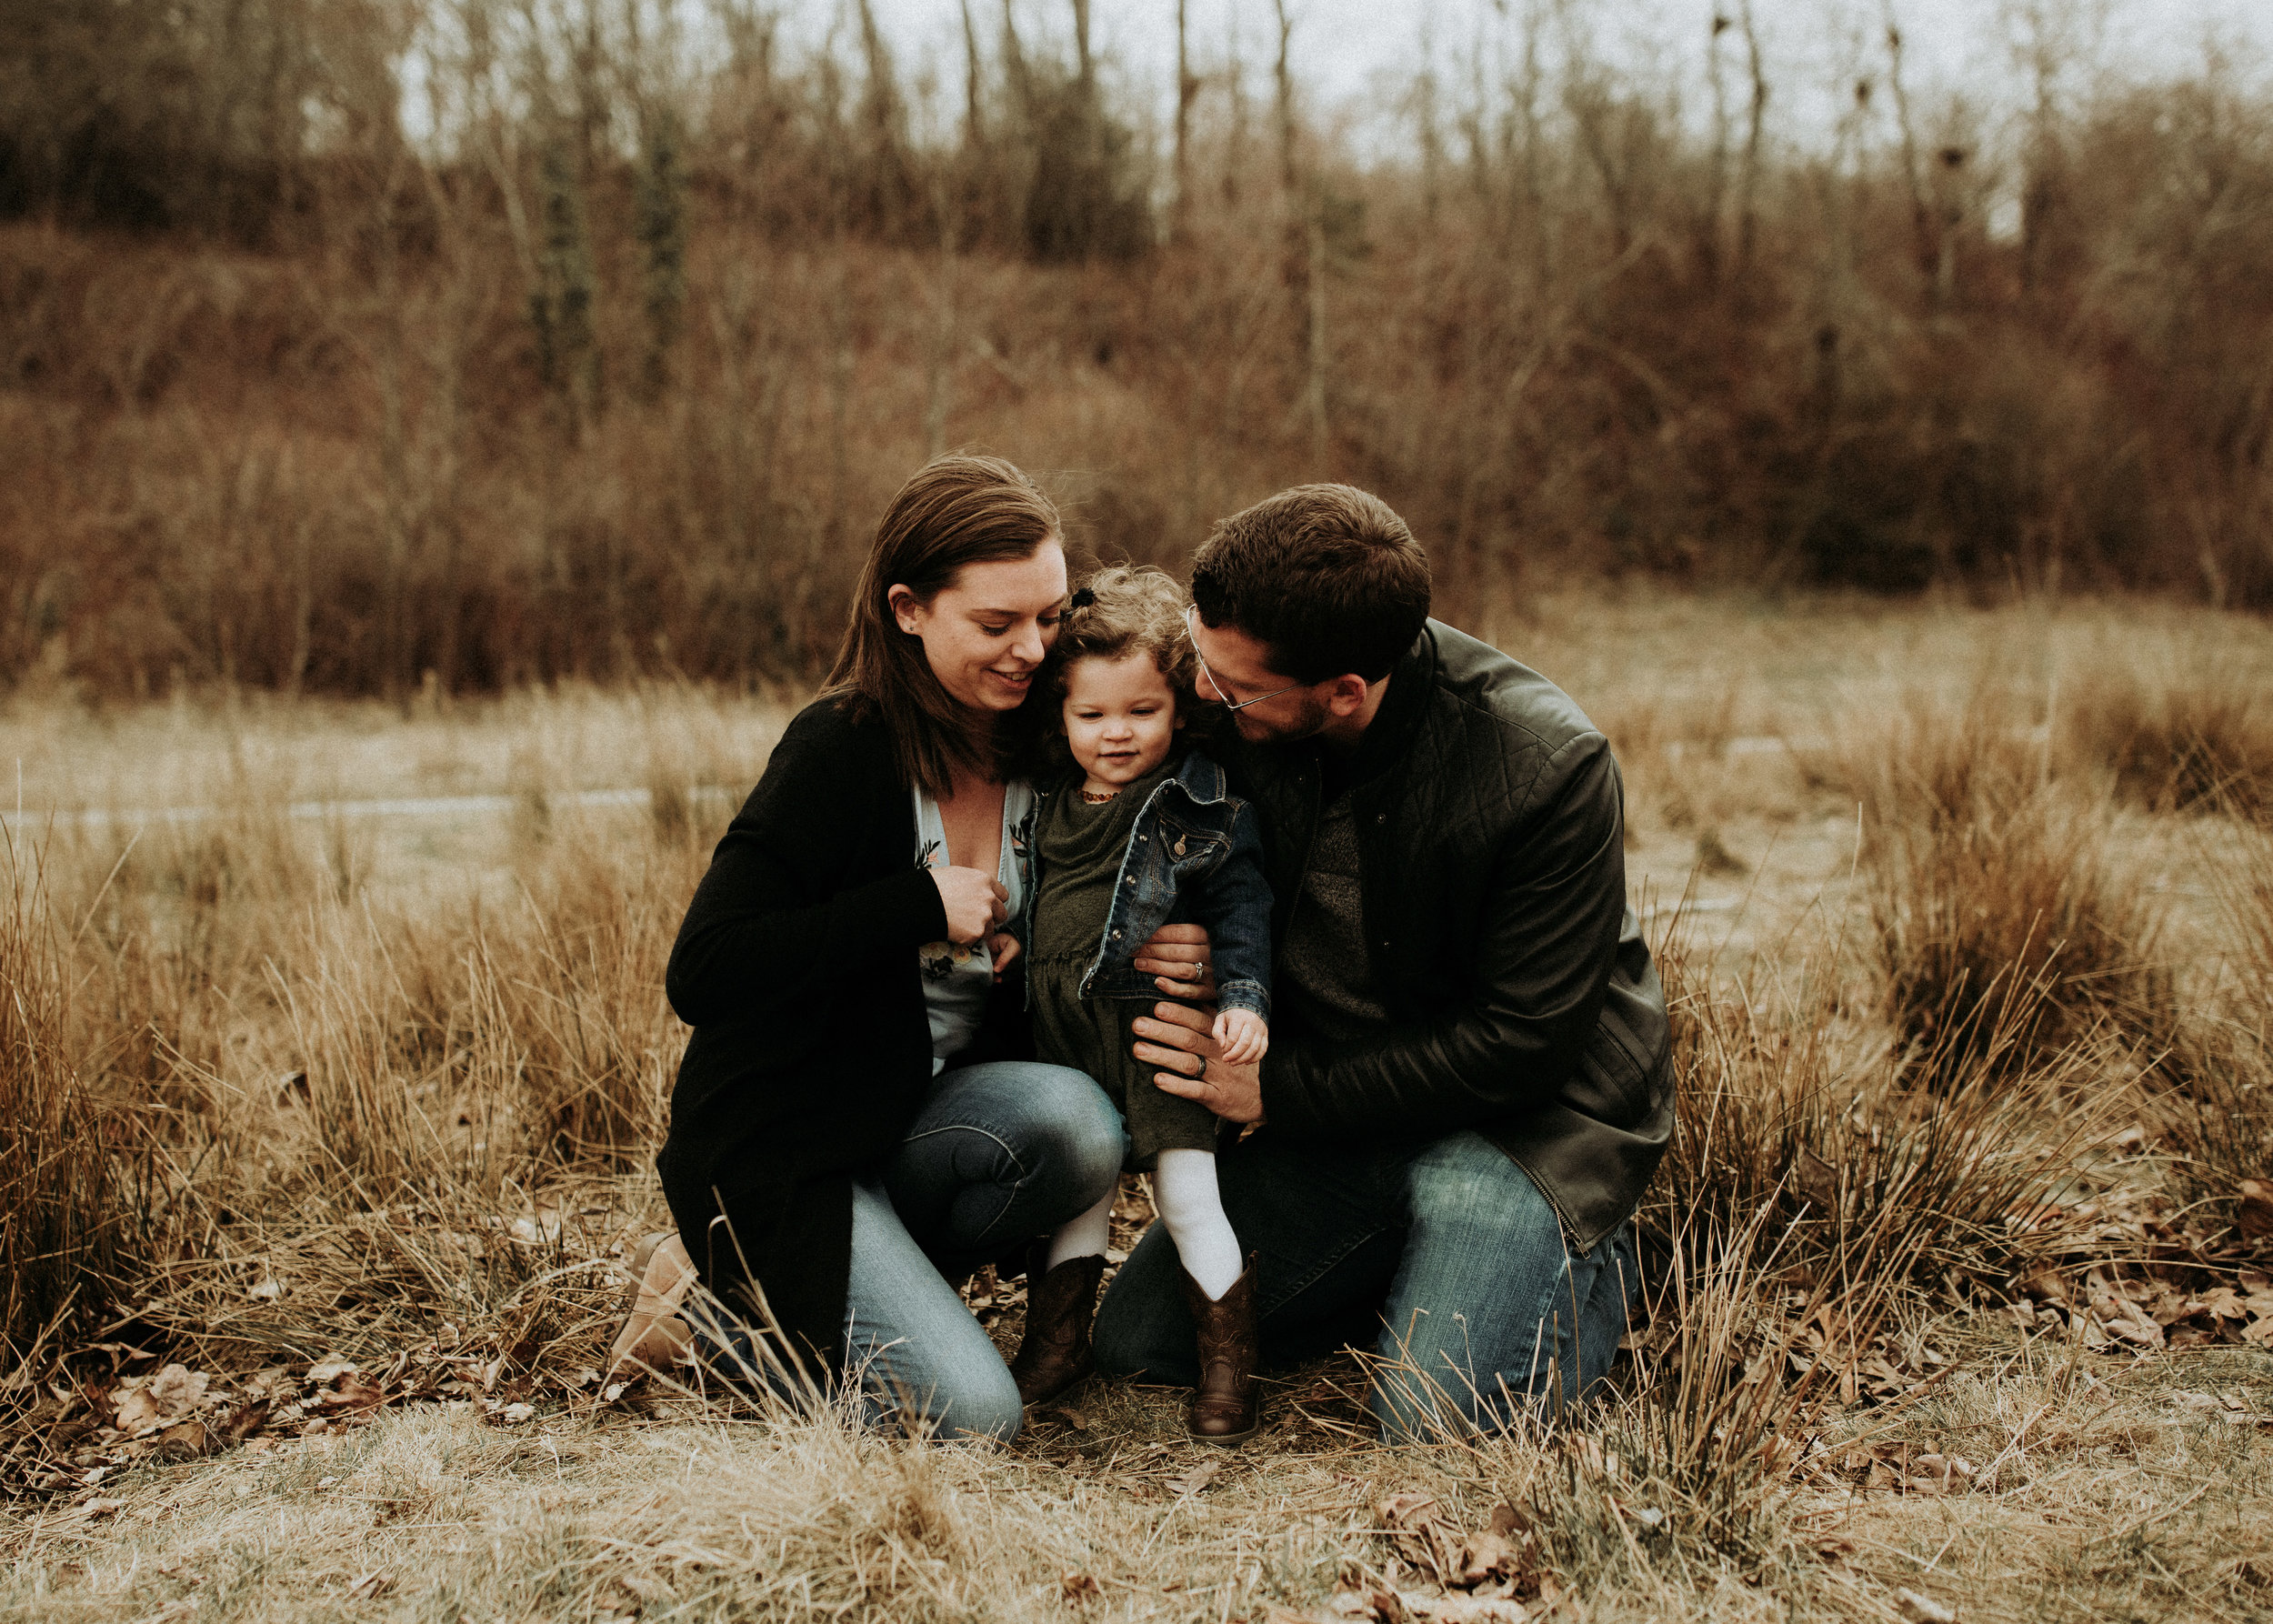 Family-Photographer-Bellingham-WA-Brianne-Bell-Photograpy-(Anya)-17.jpg